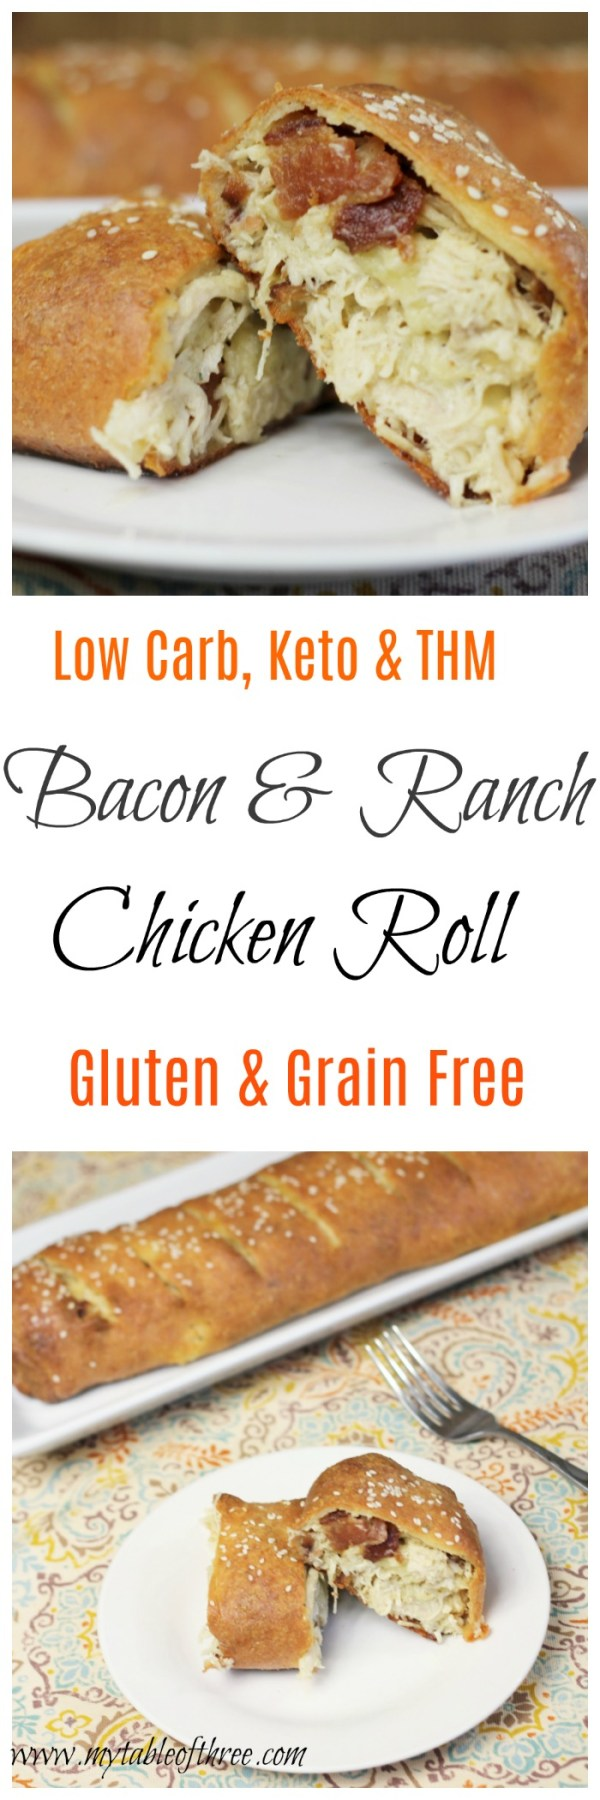 Bacon & Ranch Chicken Roll || Low Carb, Keto, THM and Gluten Free